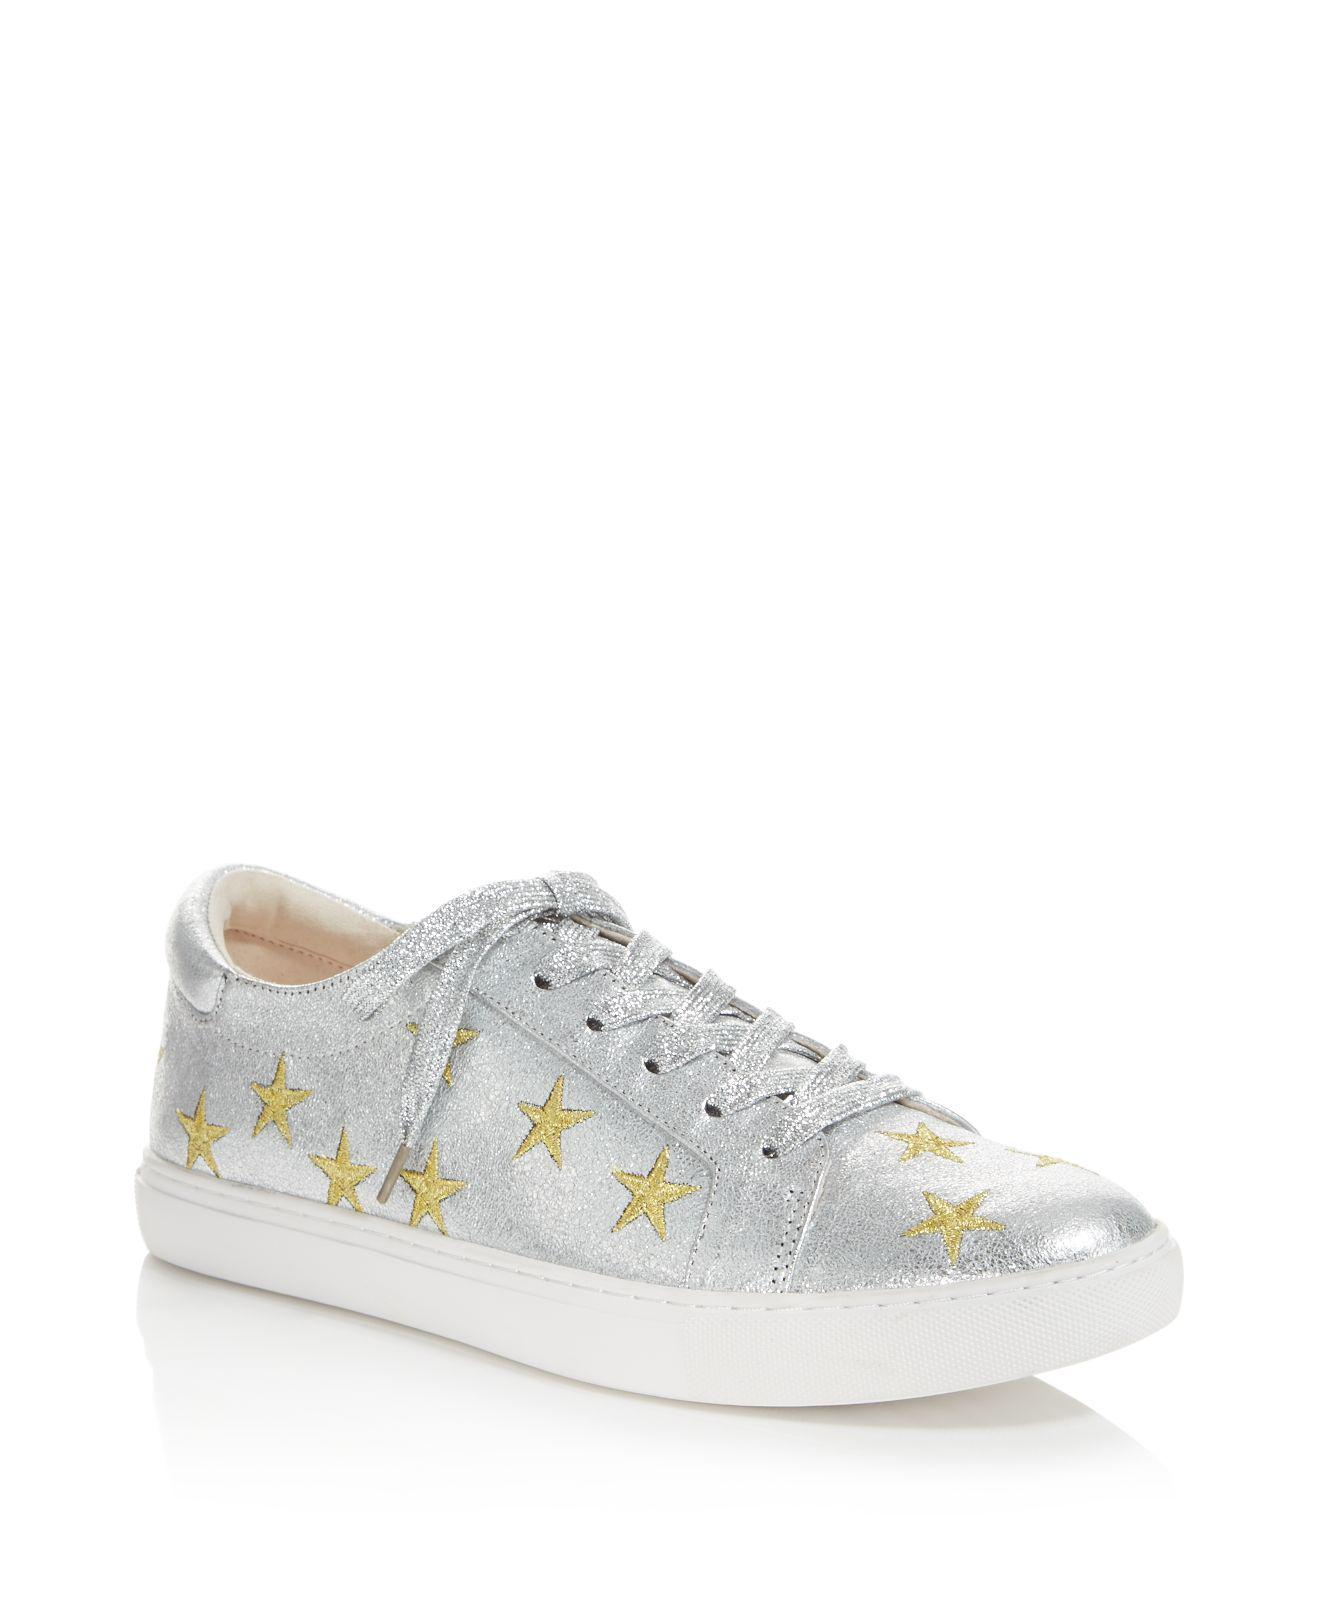 Kenneth Cole. Women's Kam Star Metallic Leather Lace Up Sneakers